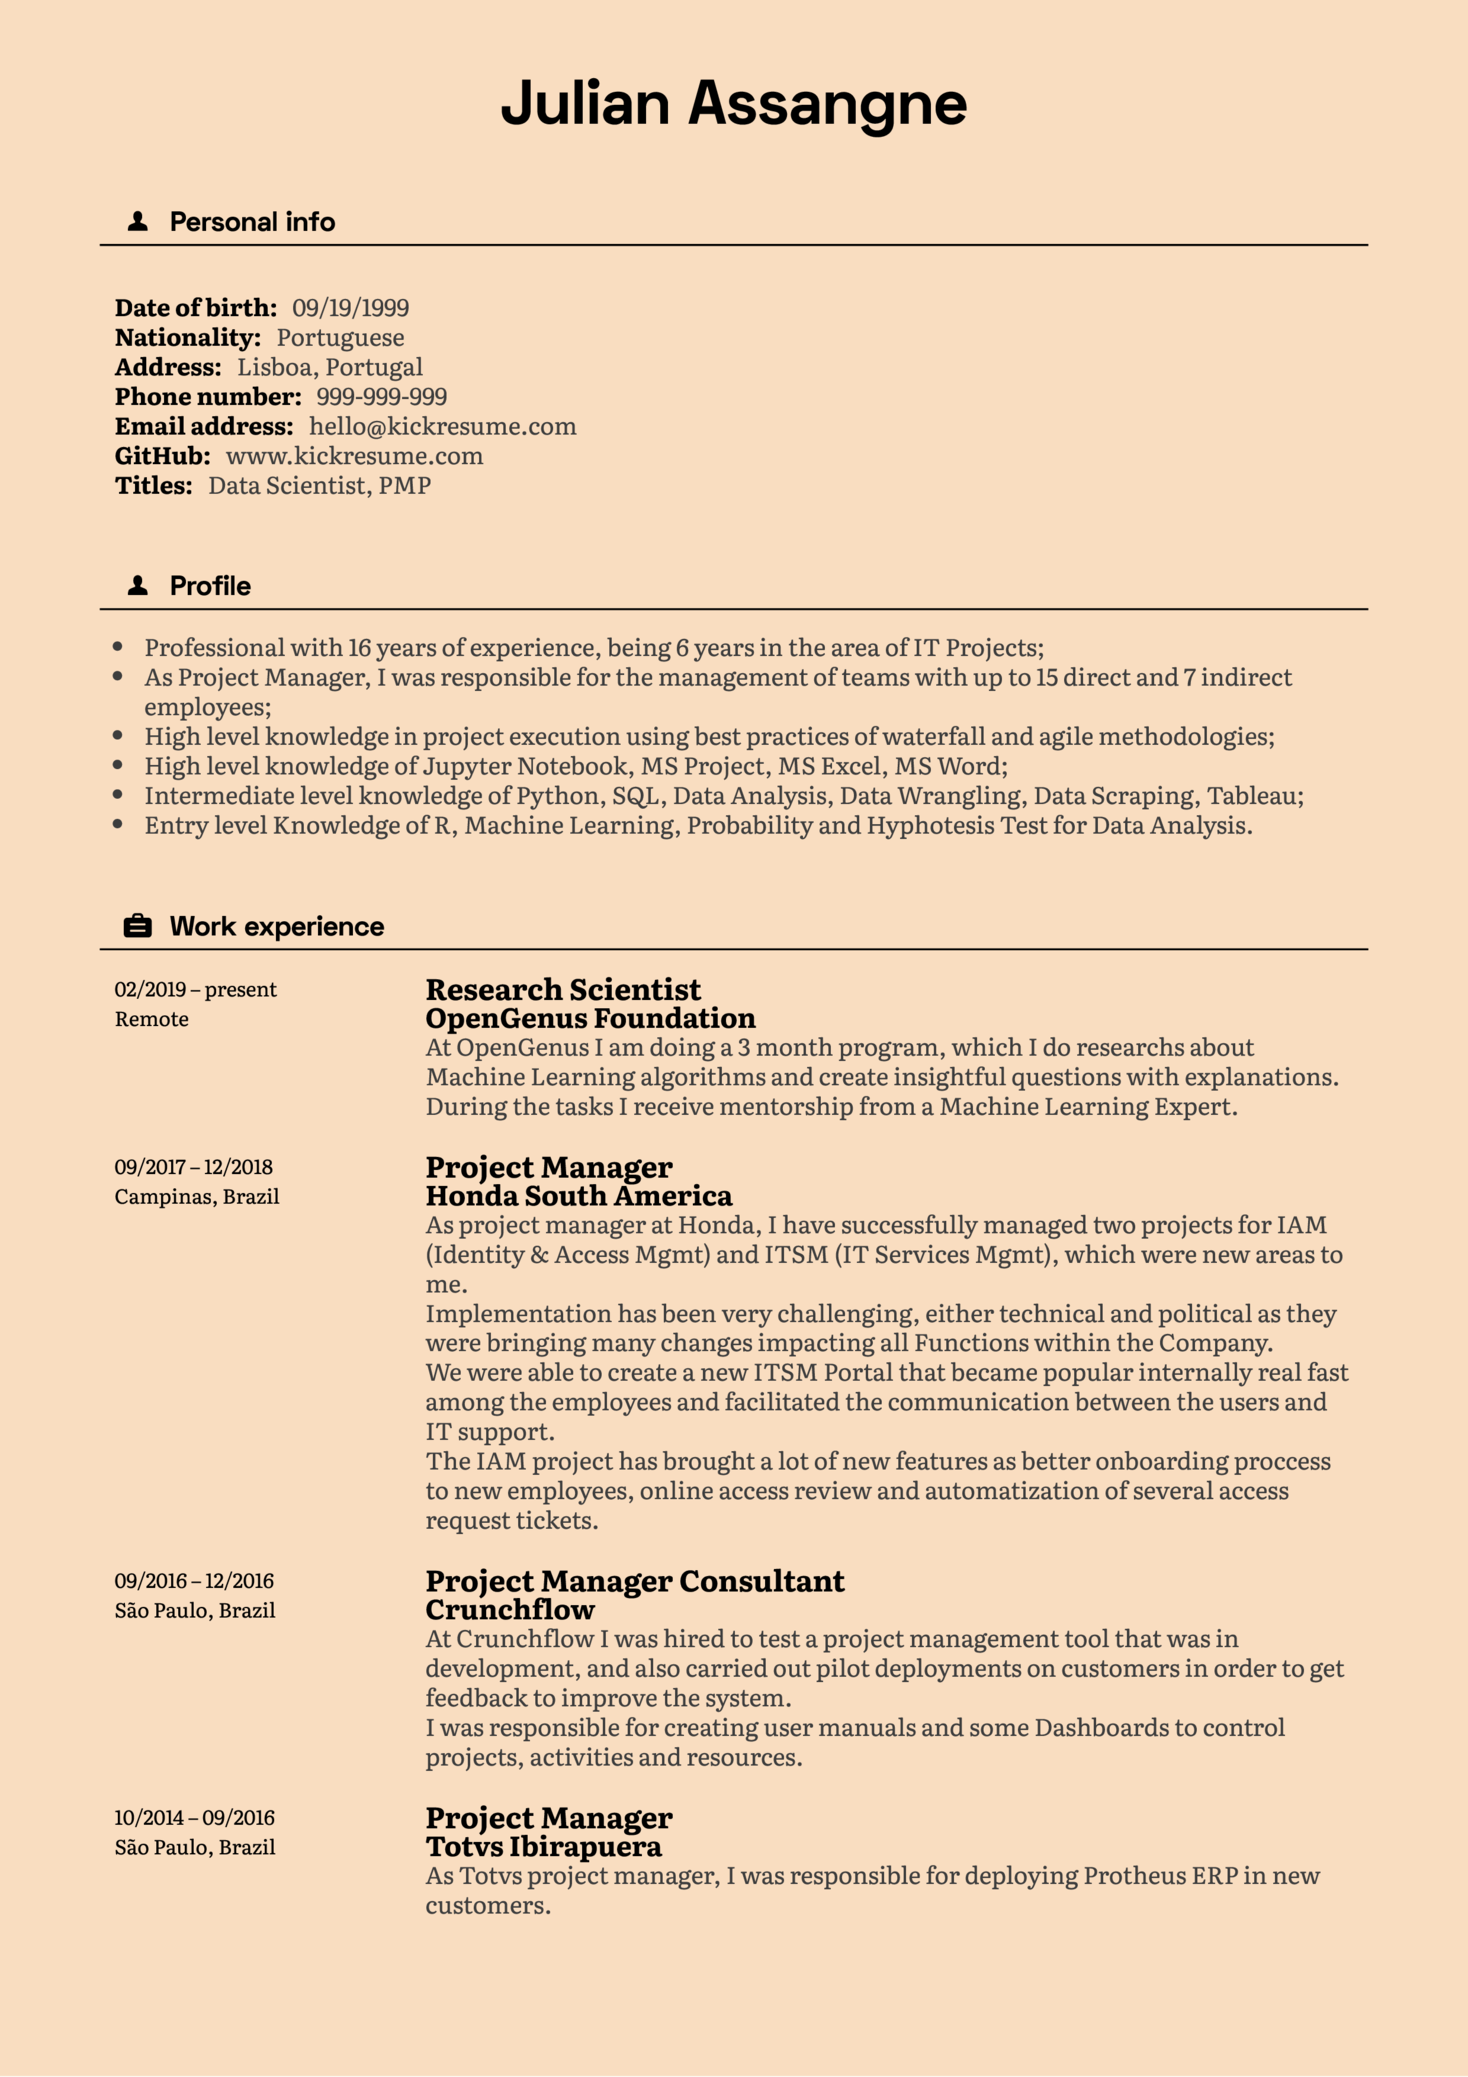 Senior Project Manager CV Example (Part 1)